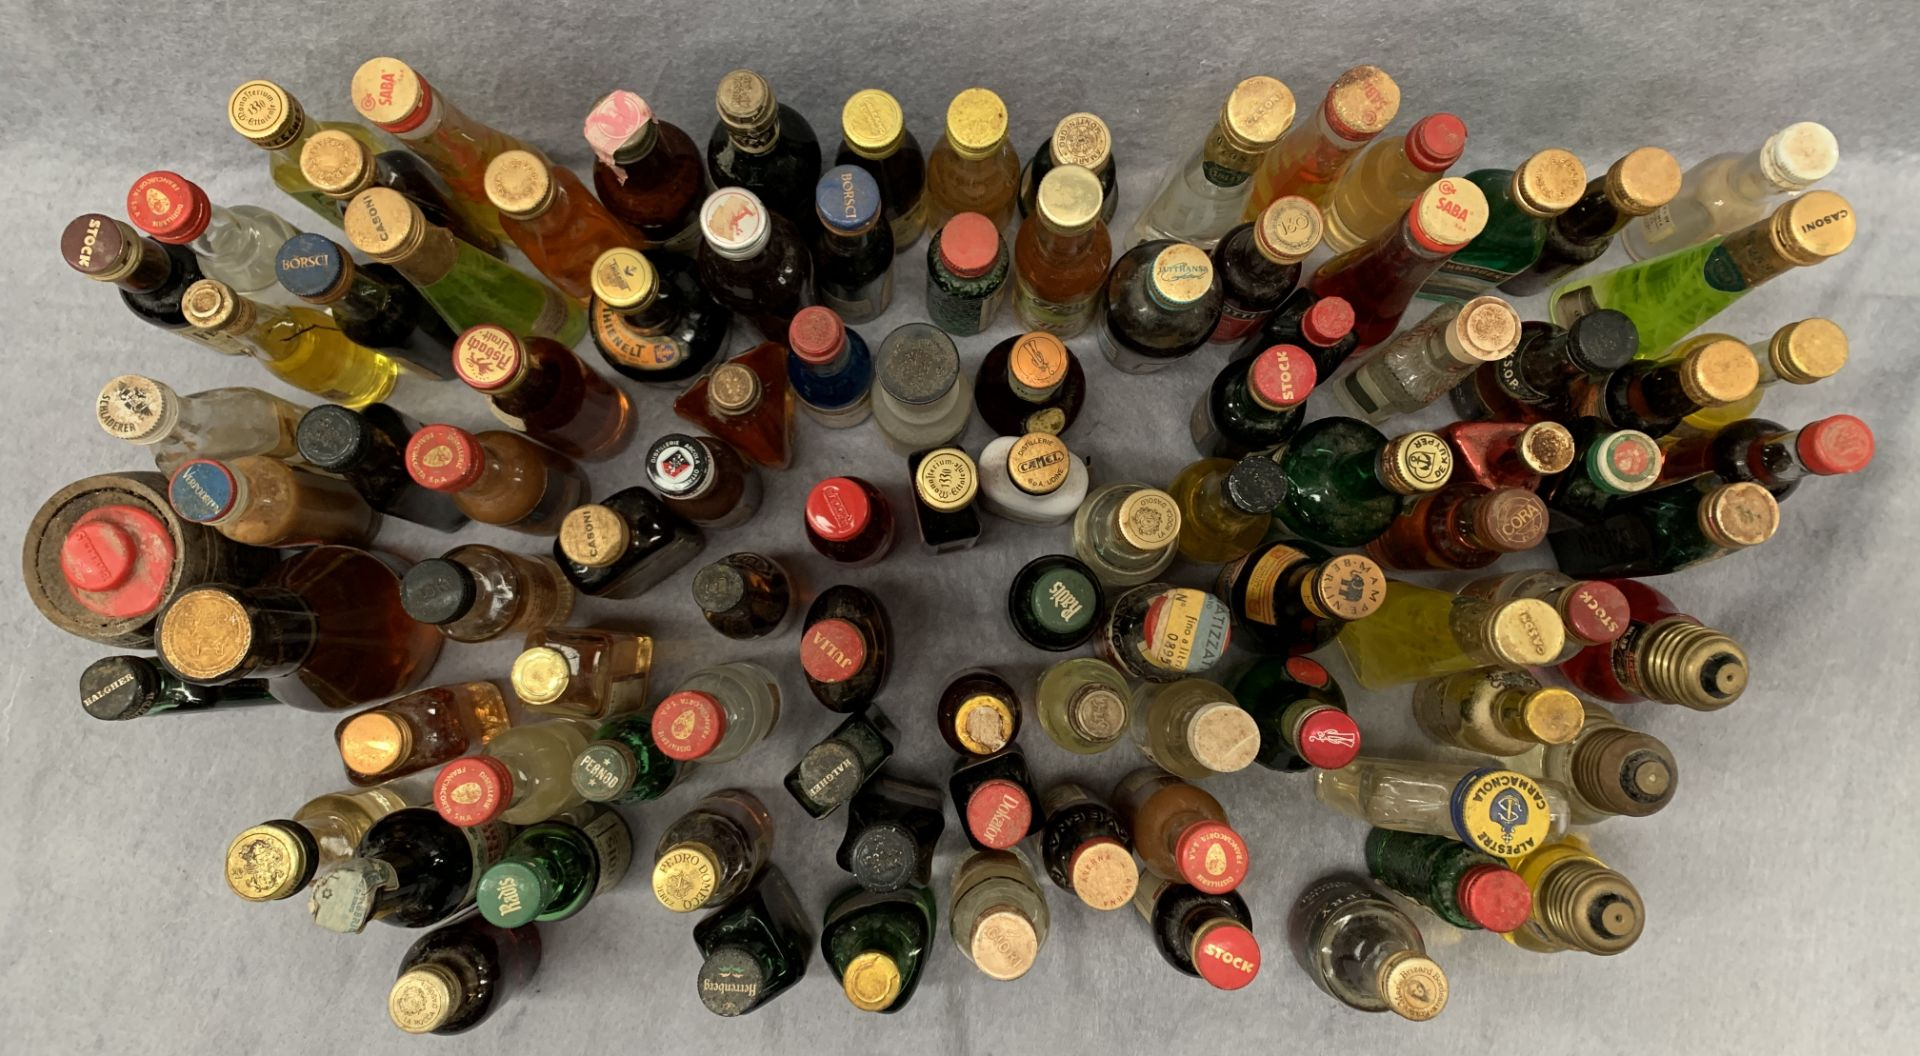 Lot 10 - Approximately 95 full and part bottles of liqueur and spirit miniatures,